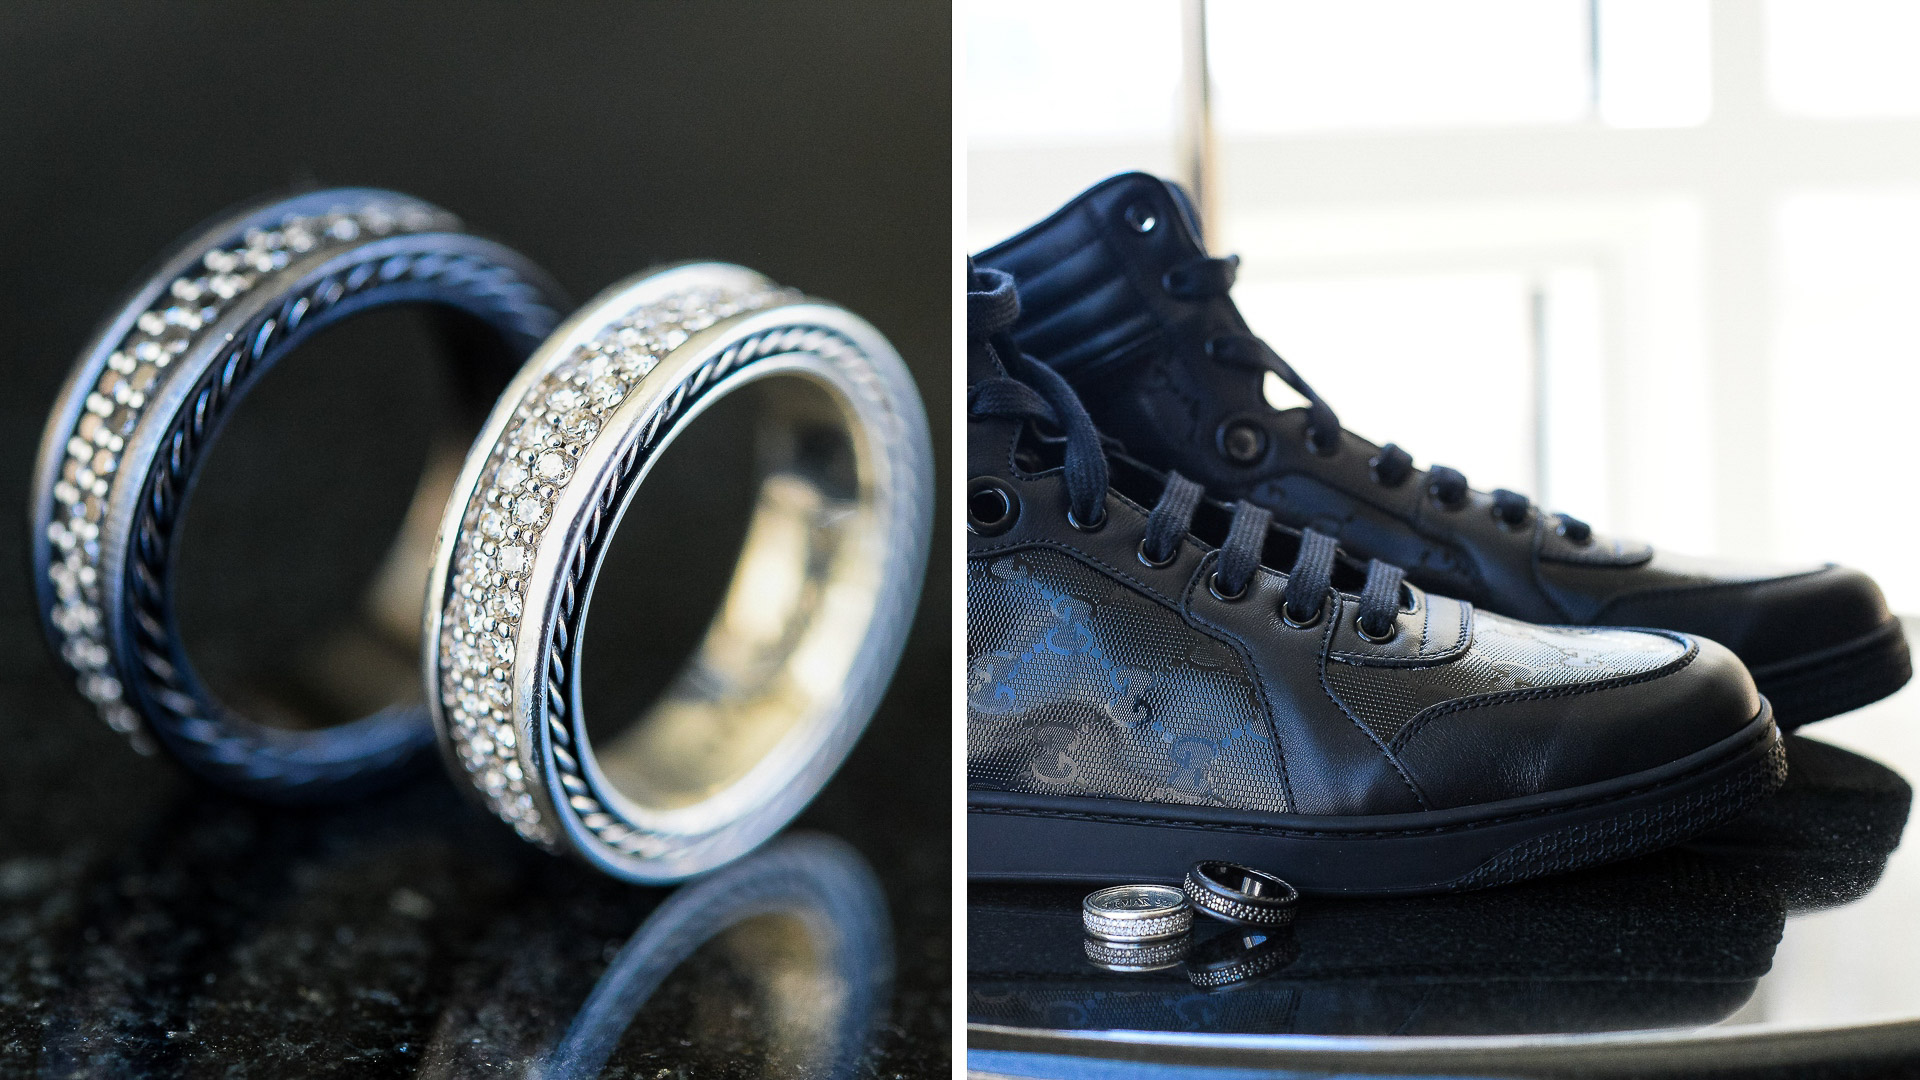 Gay wedding rings David Yurman and Gucci shoes detail at the Ritz Carlton 42 restaurant in White Plains NY